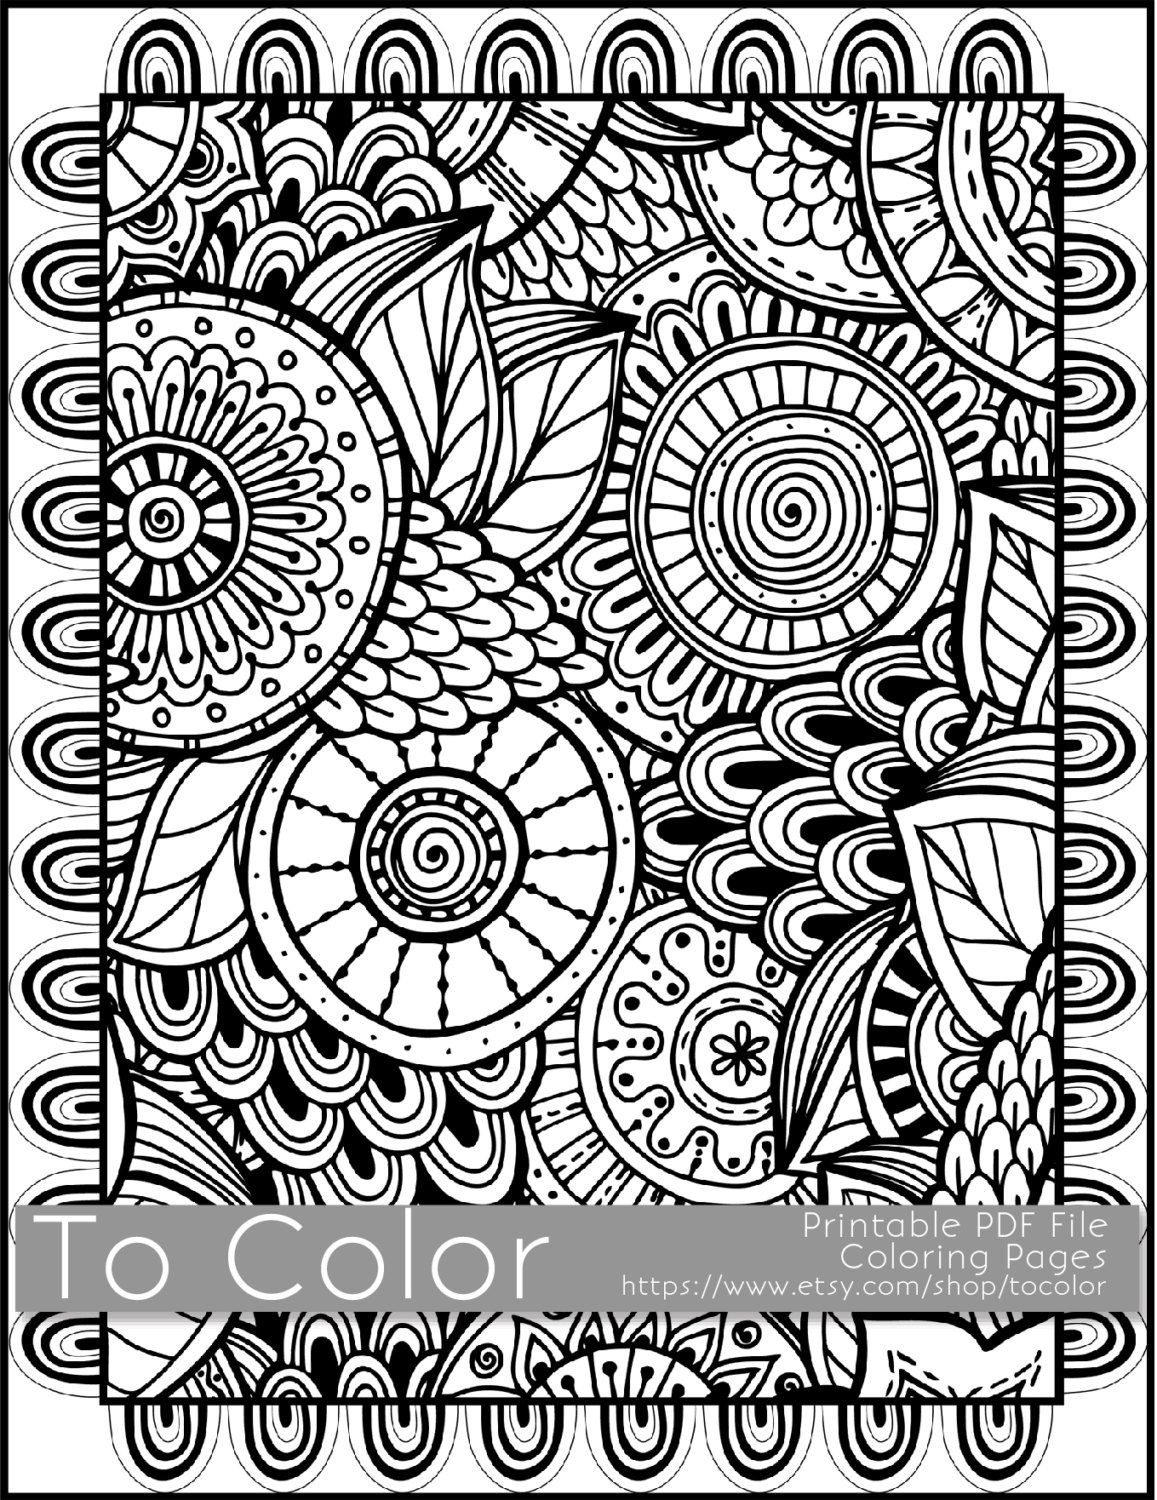 Printable Coloring Pages for Adults, All Over Large Doodle Pattern ...